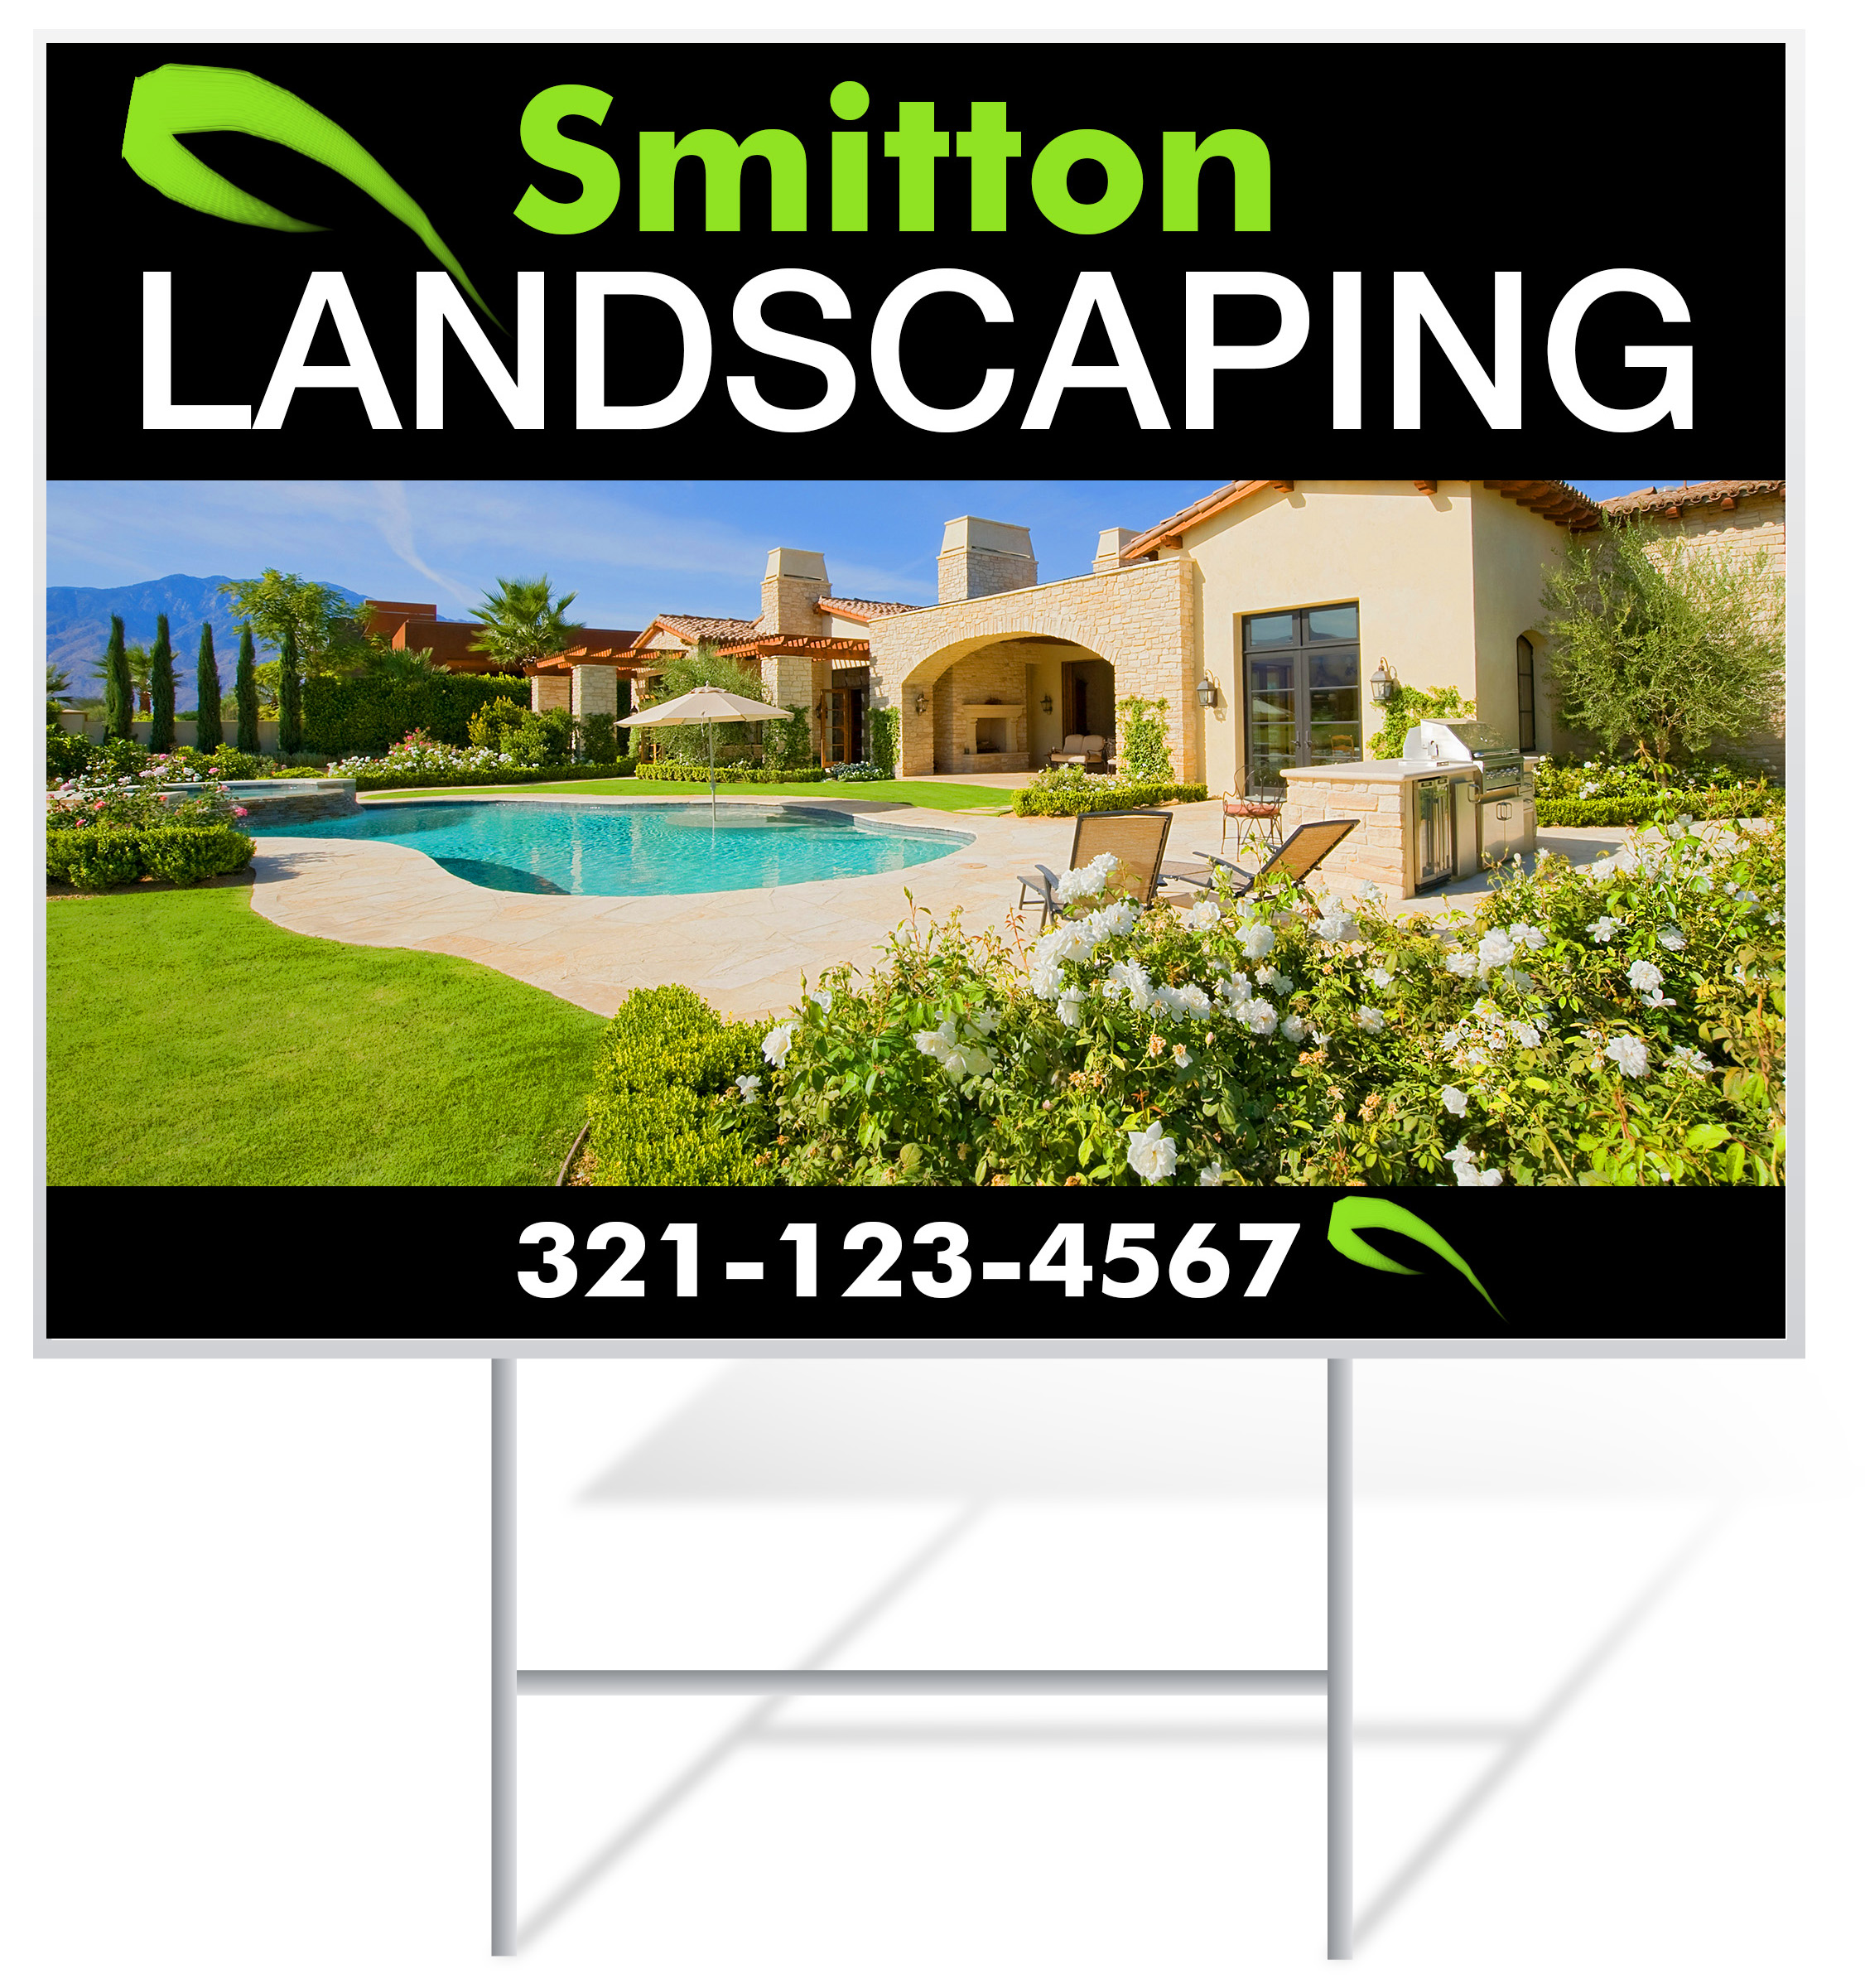 Landscaping Lawn Signs | Lawnsigns.com